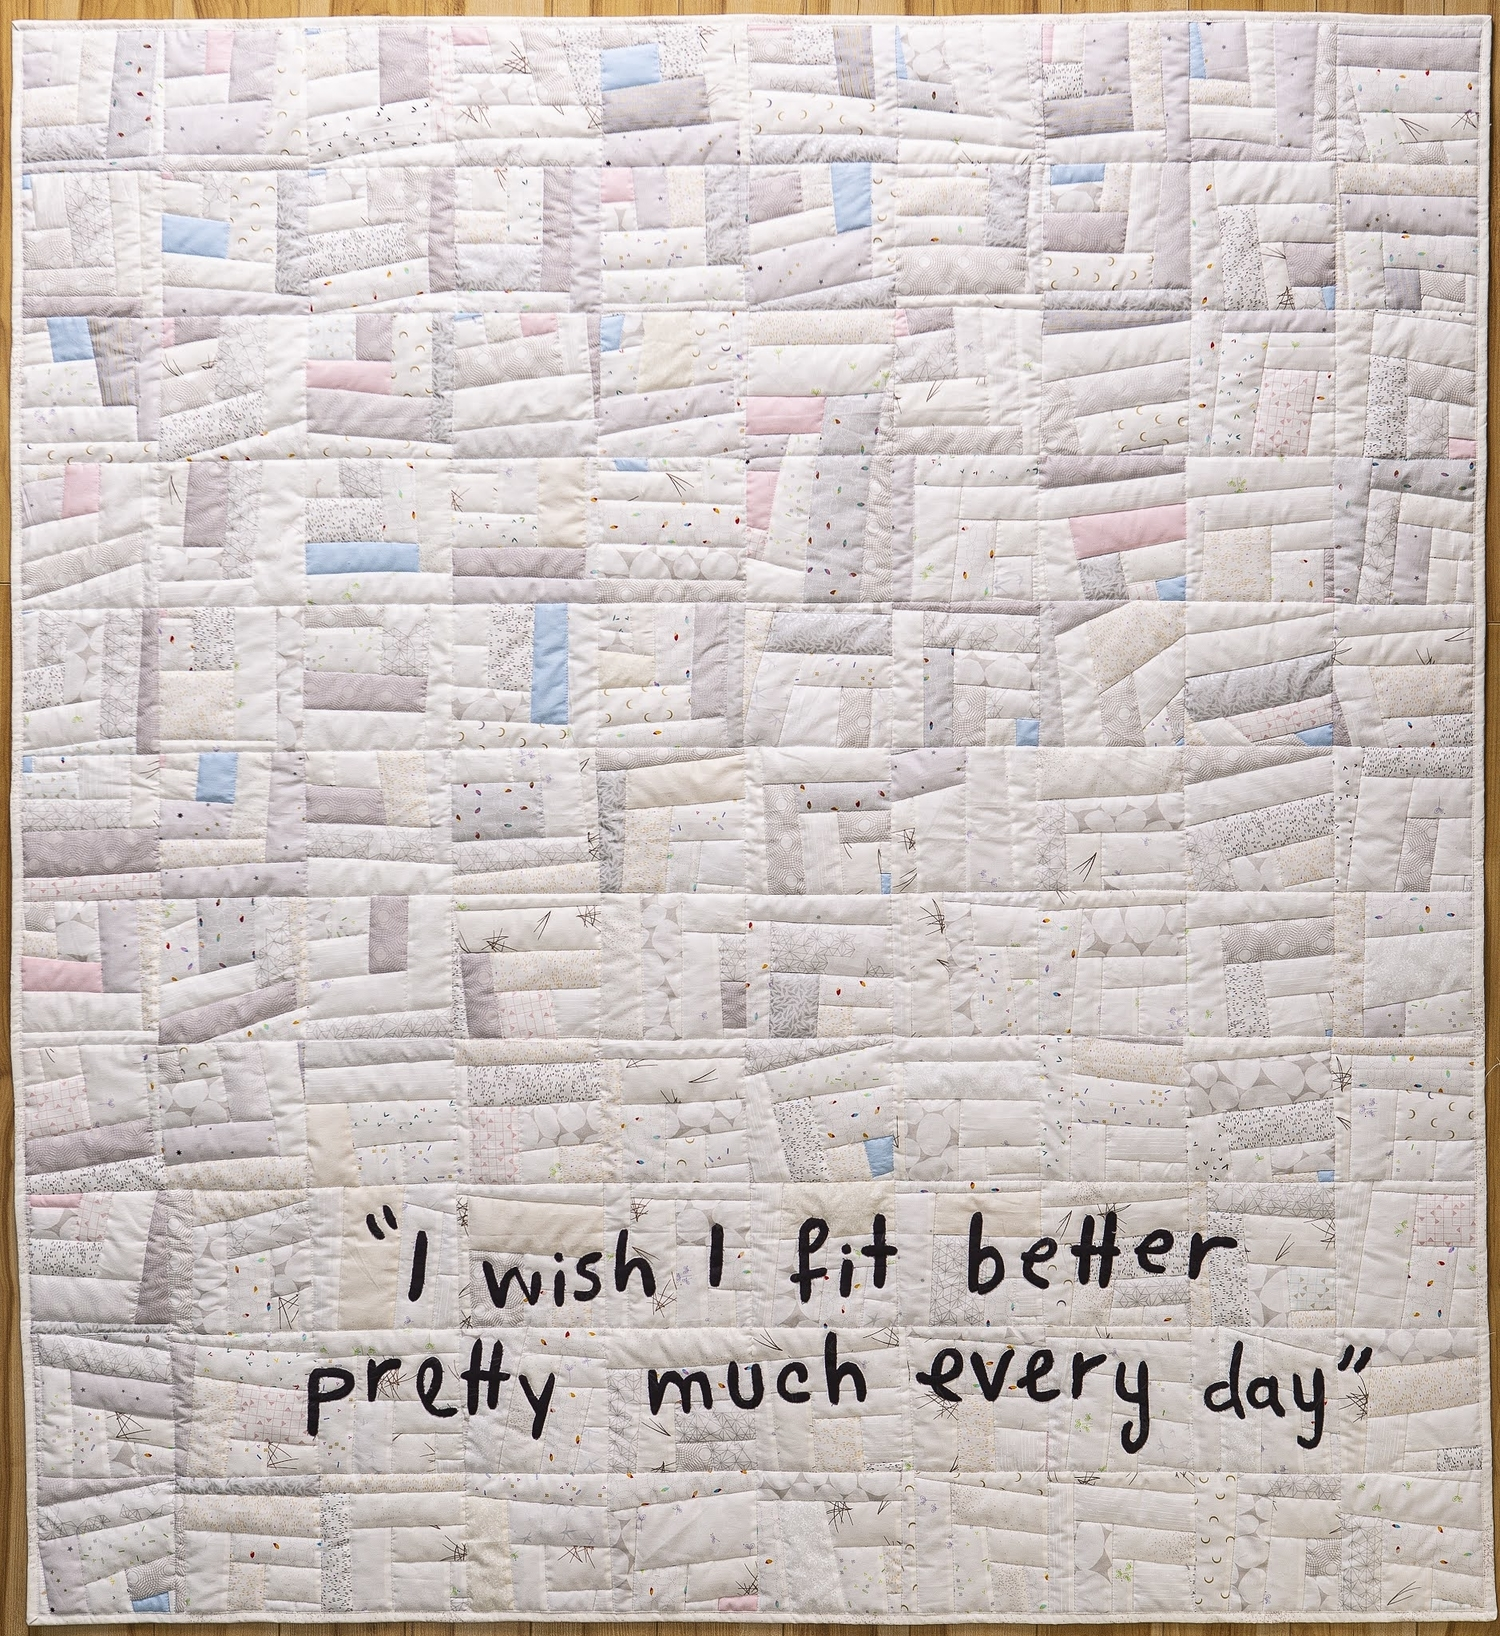 I wish I fit better pretty much every day by Bill Stearman, 2020